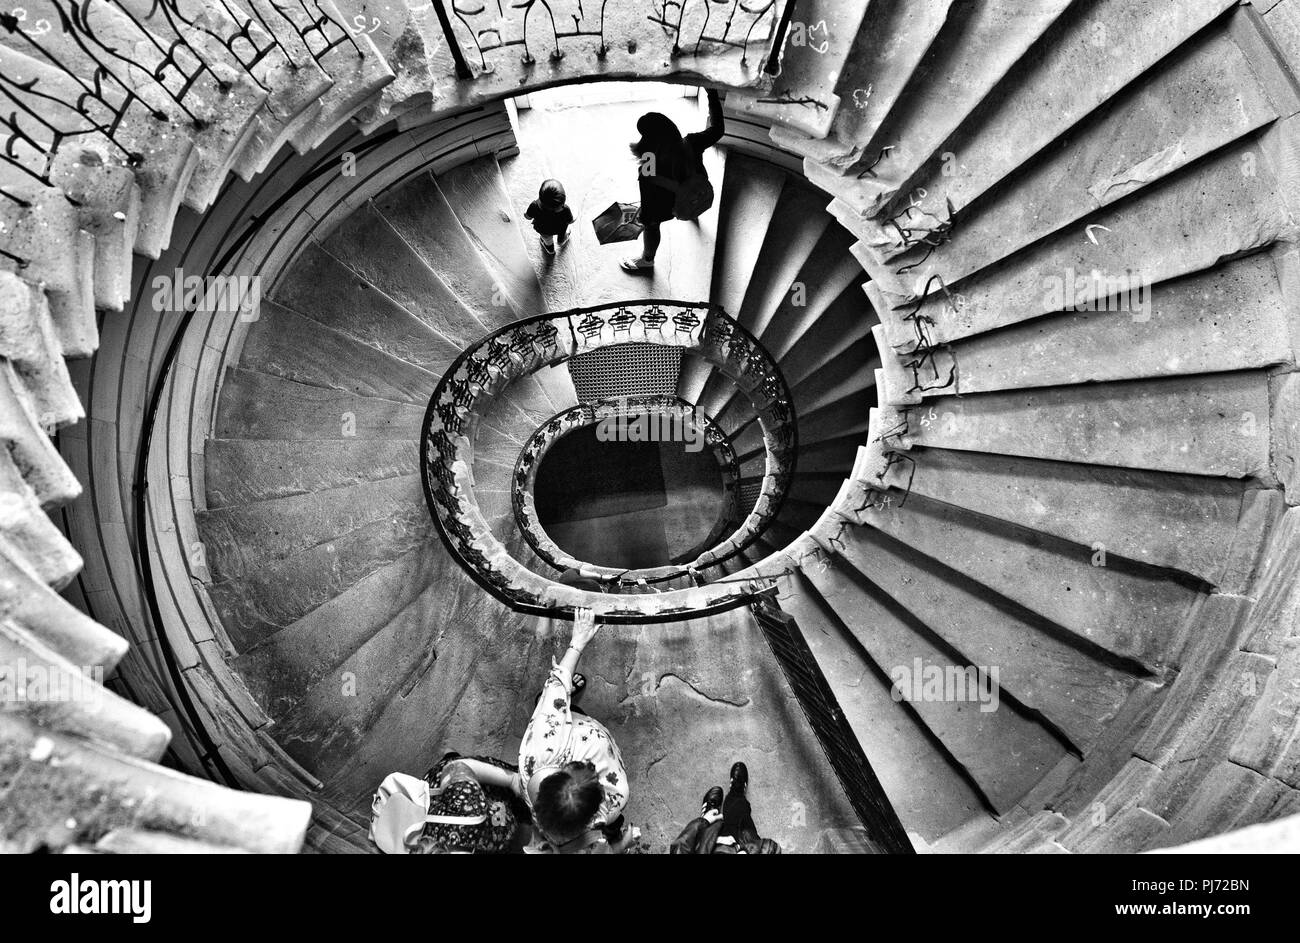 Standalone converted from colour to black white one of the winding staircases at the national trusts seaton delaval hall in northumberland